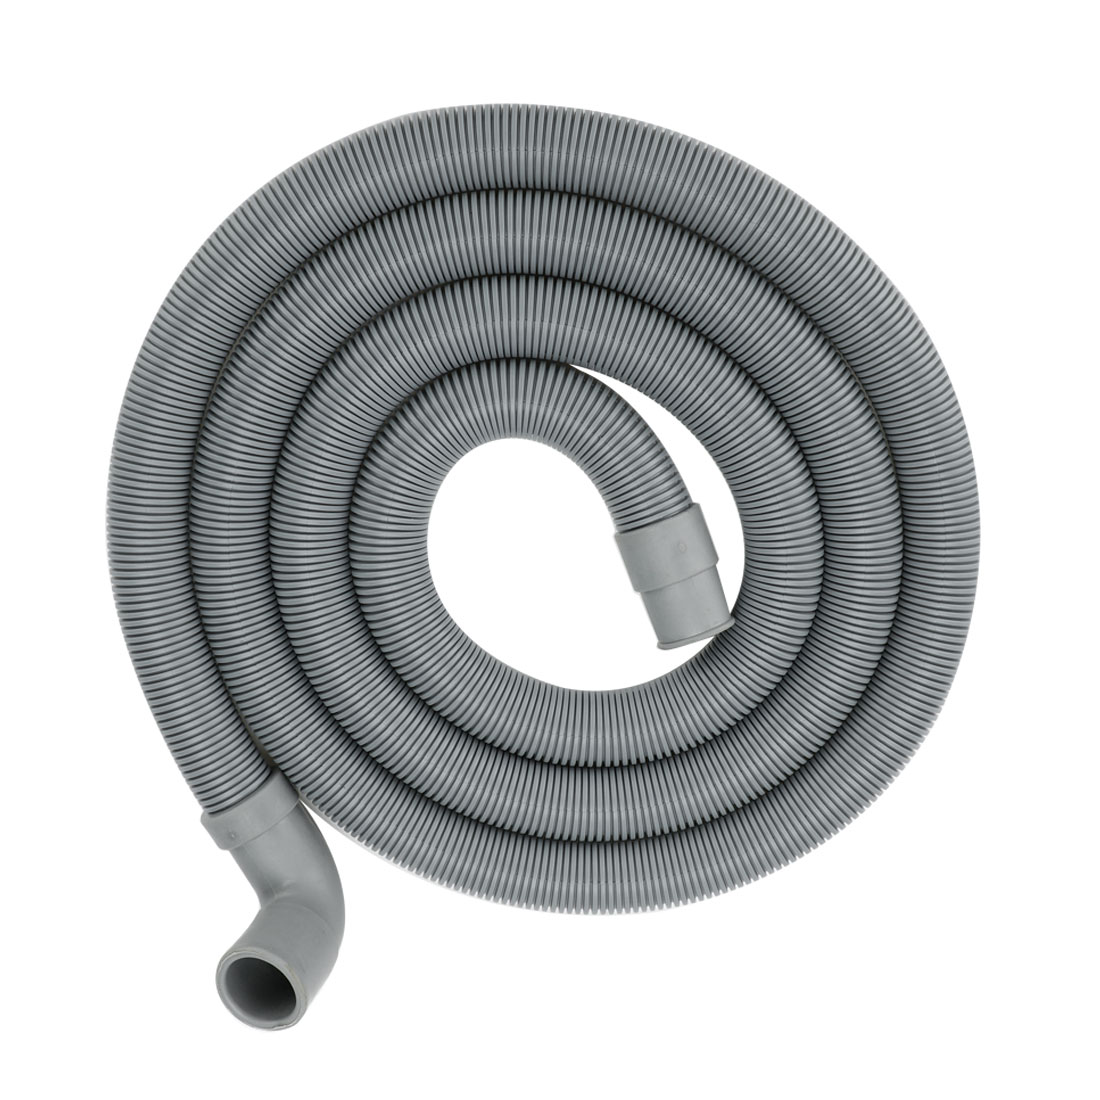 6.6ft 90 Degree Right Angle Elbow Washing Machine Drain Hose Extension Hose